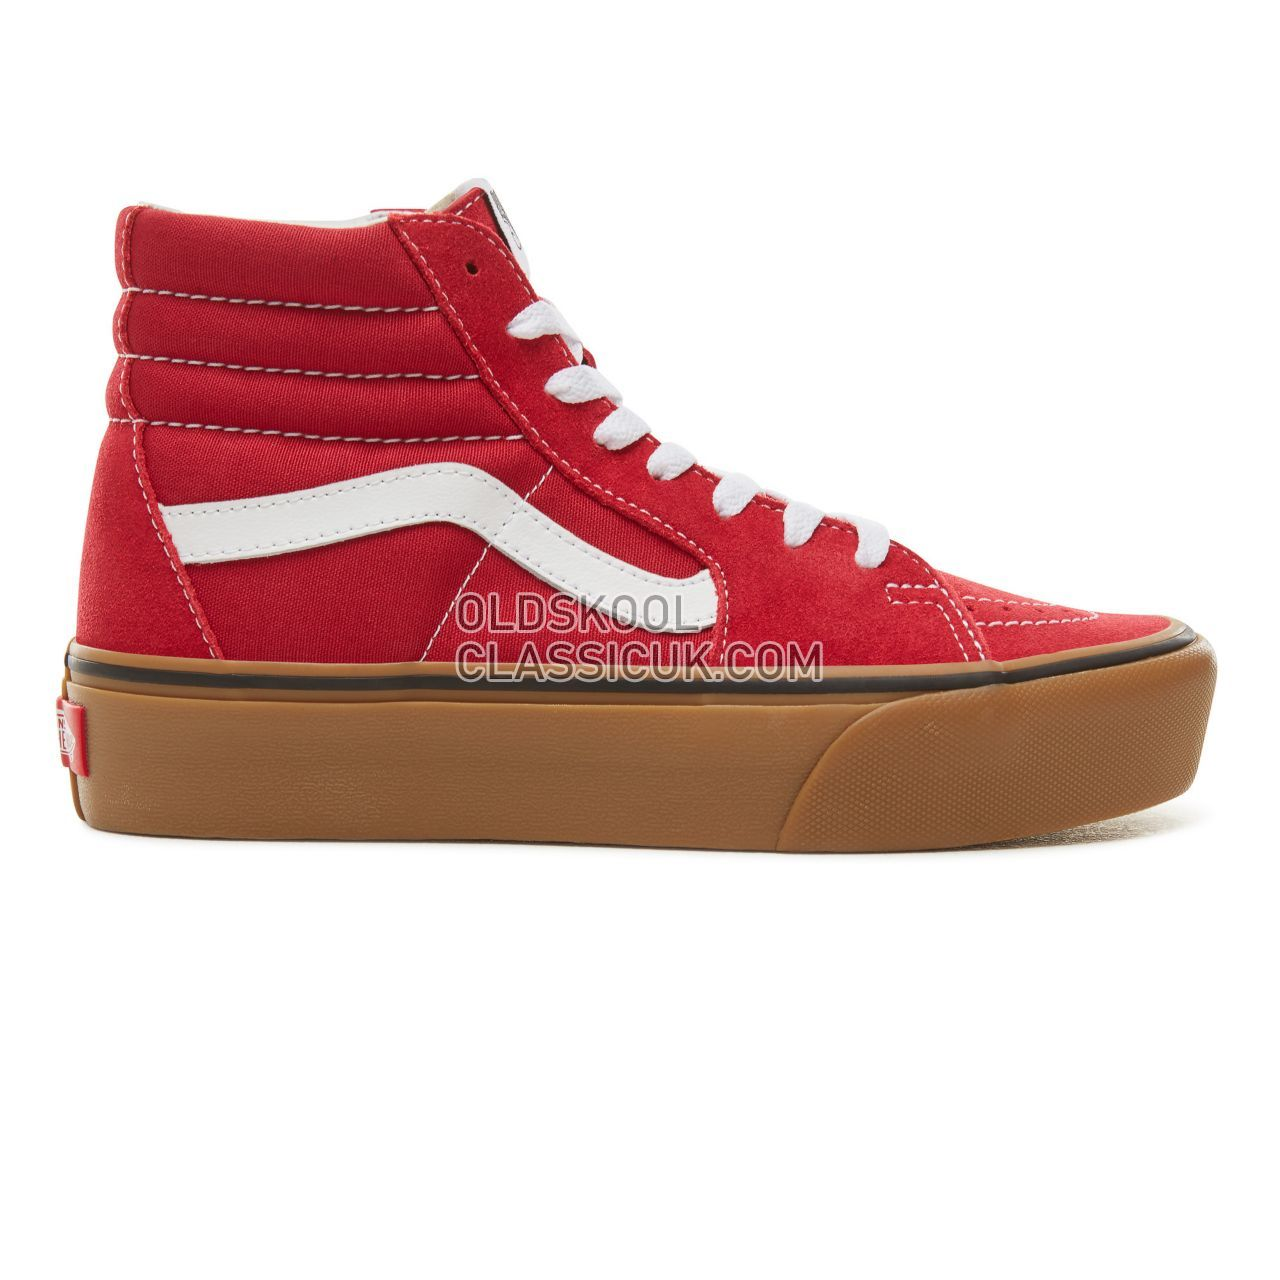 Vans Suede Gum Sk8-Hi Platform 2.0 Sneakers Womens (Gum) Scooter/True White VA3TKNUCD Shoes